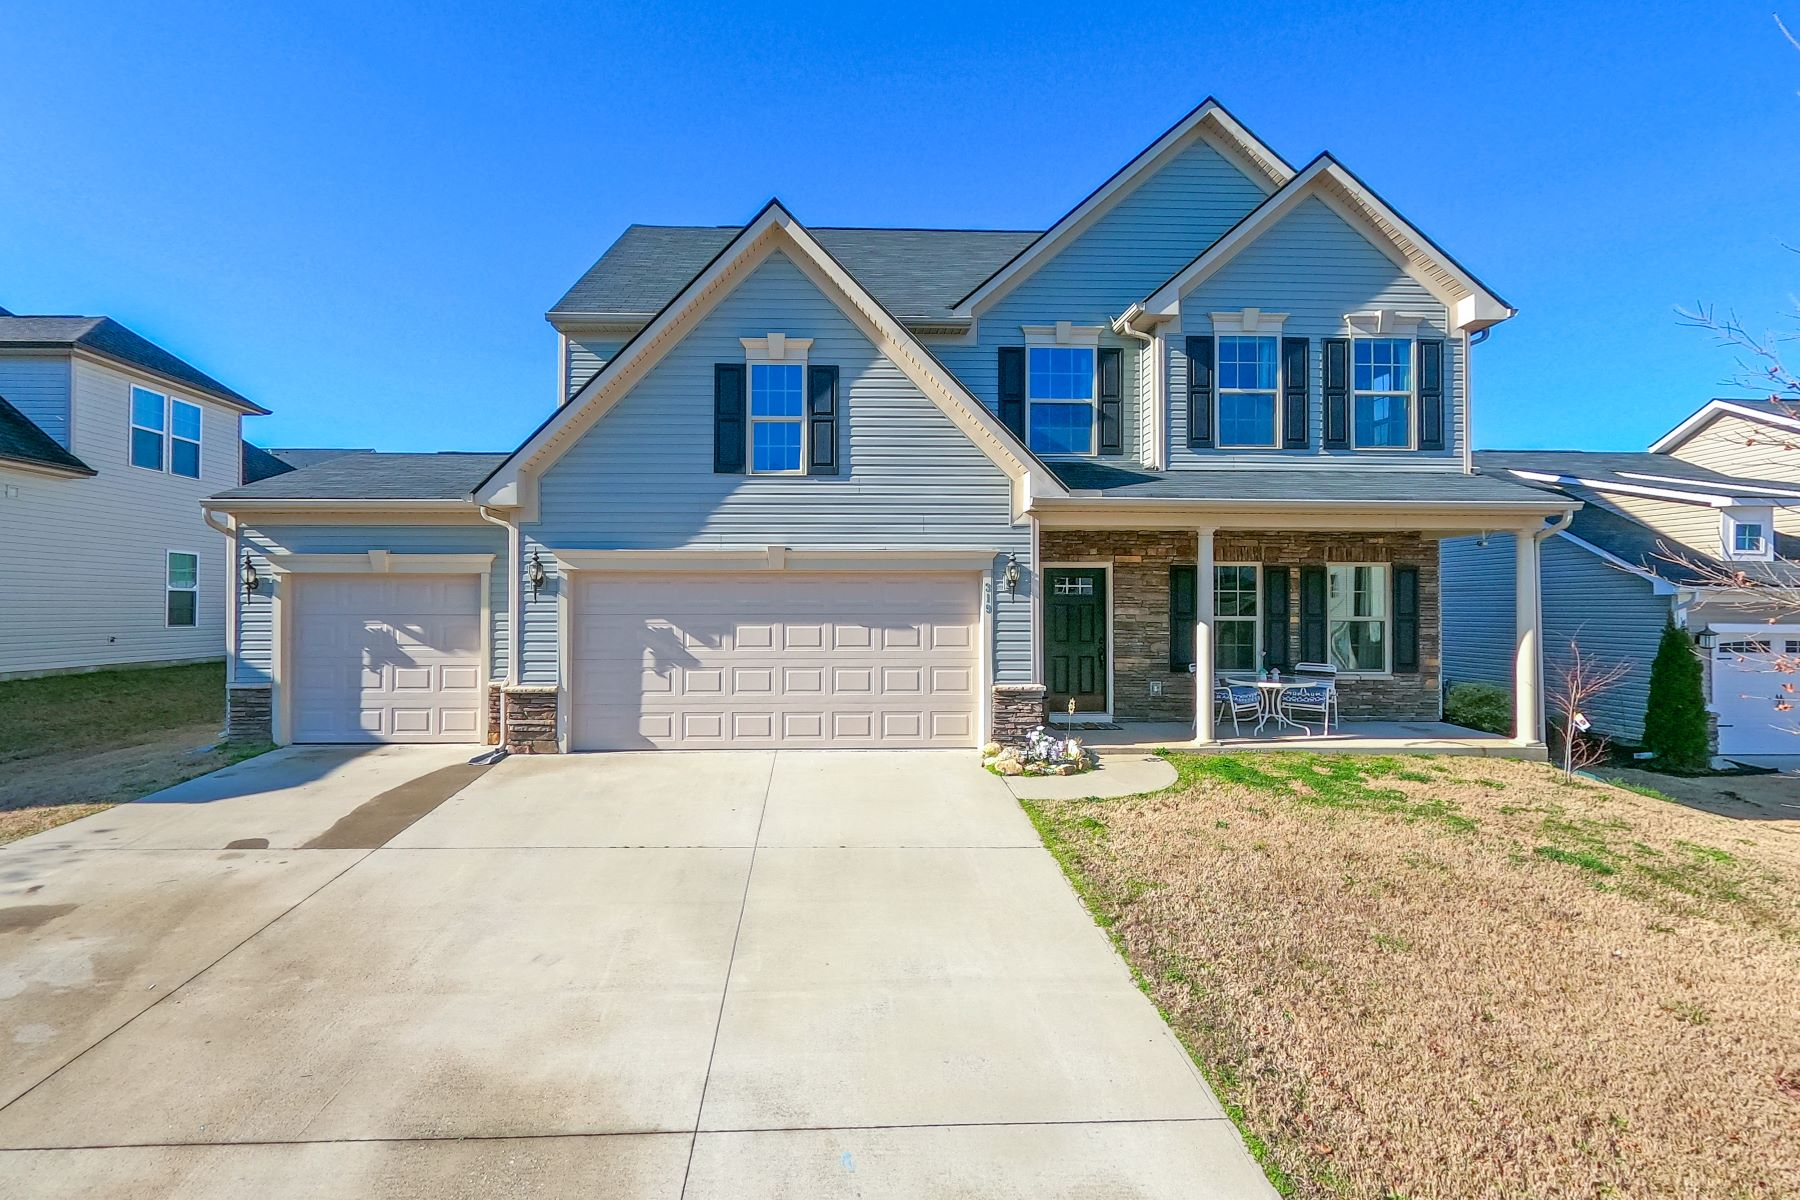 Single Family Homes for Active at 319 Kelsey Glen, Simpsonville, Sc, 29681 319 Kelsey Glen Simpsonville, South Carolina 29681 United States